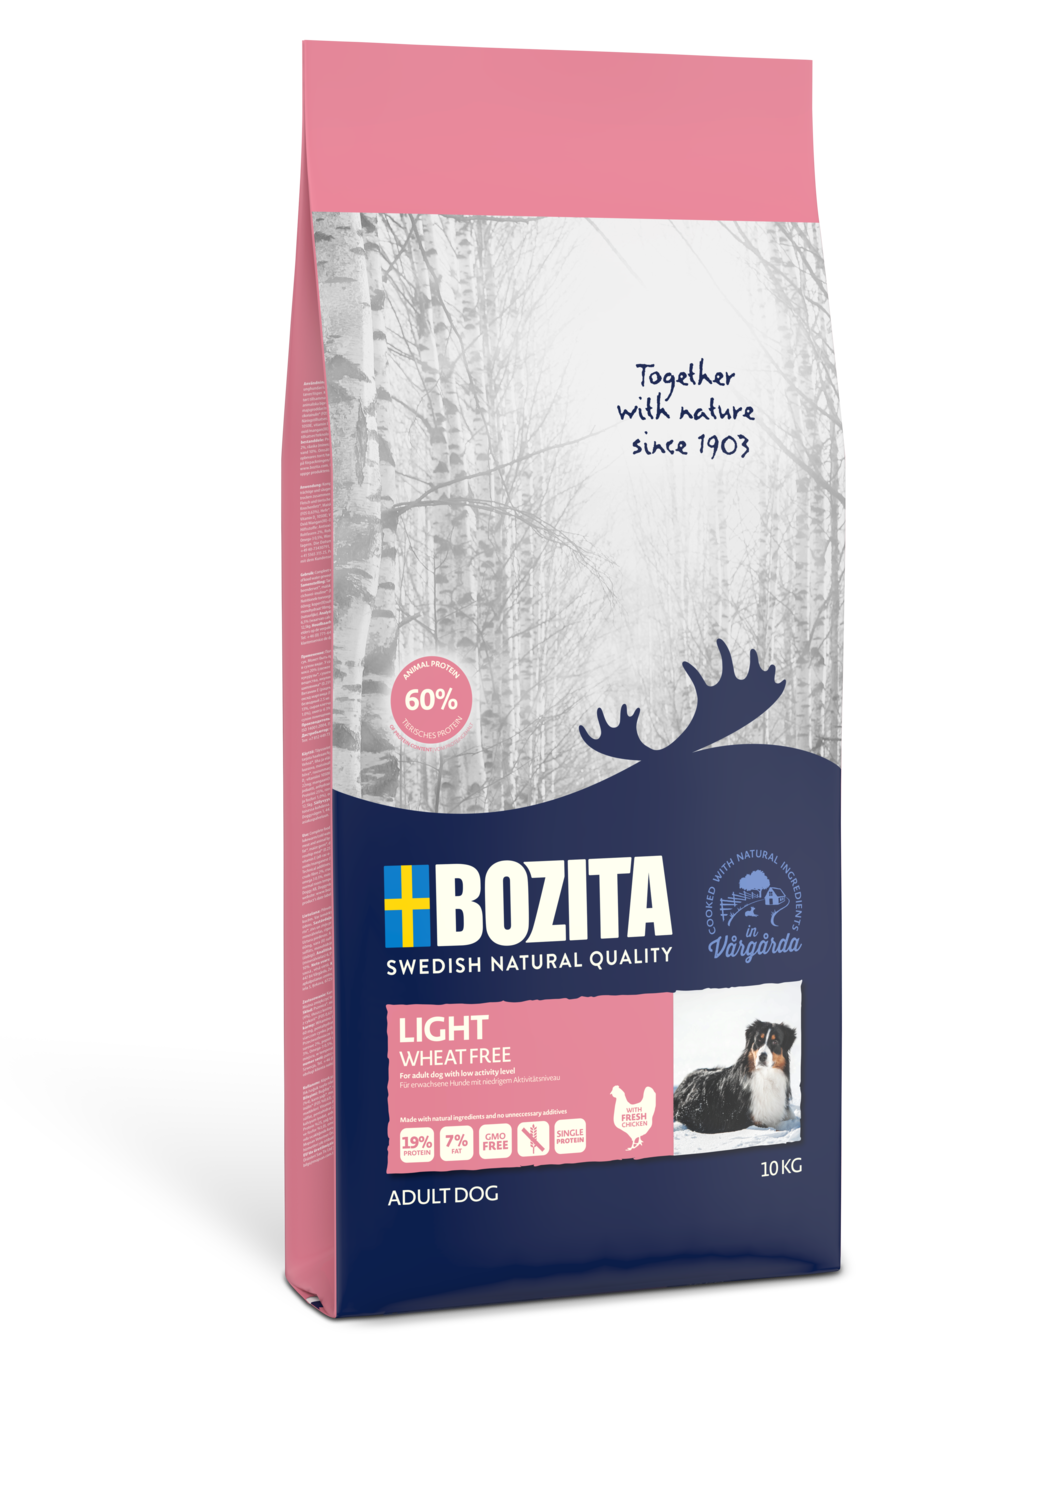 Bozita Light Wheat Free 10kg